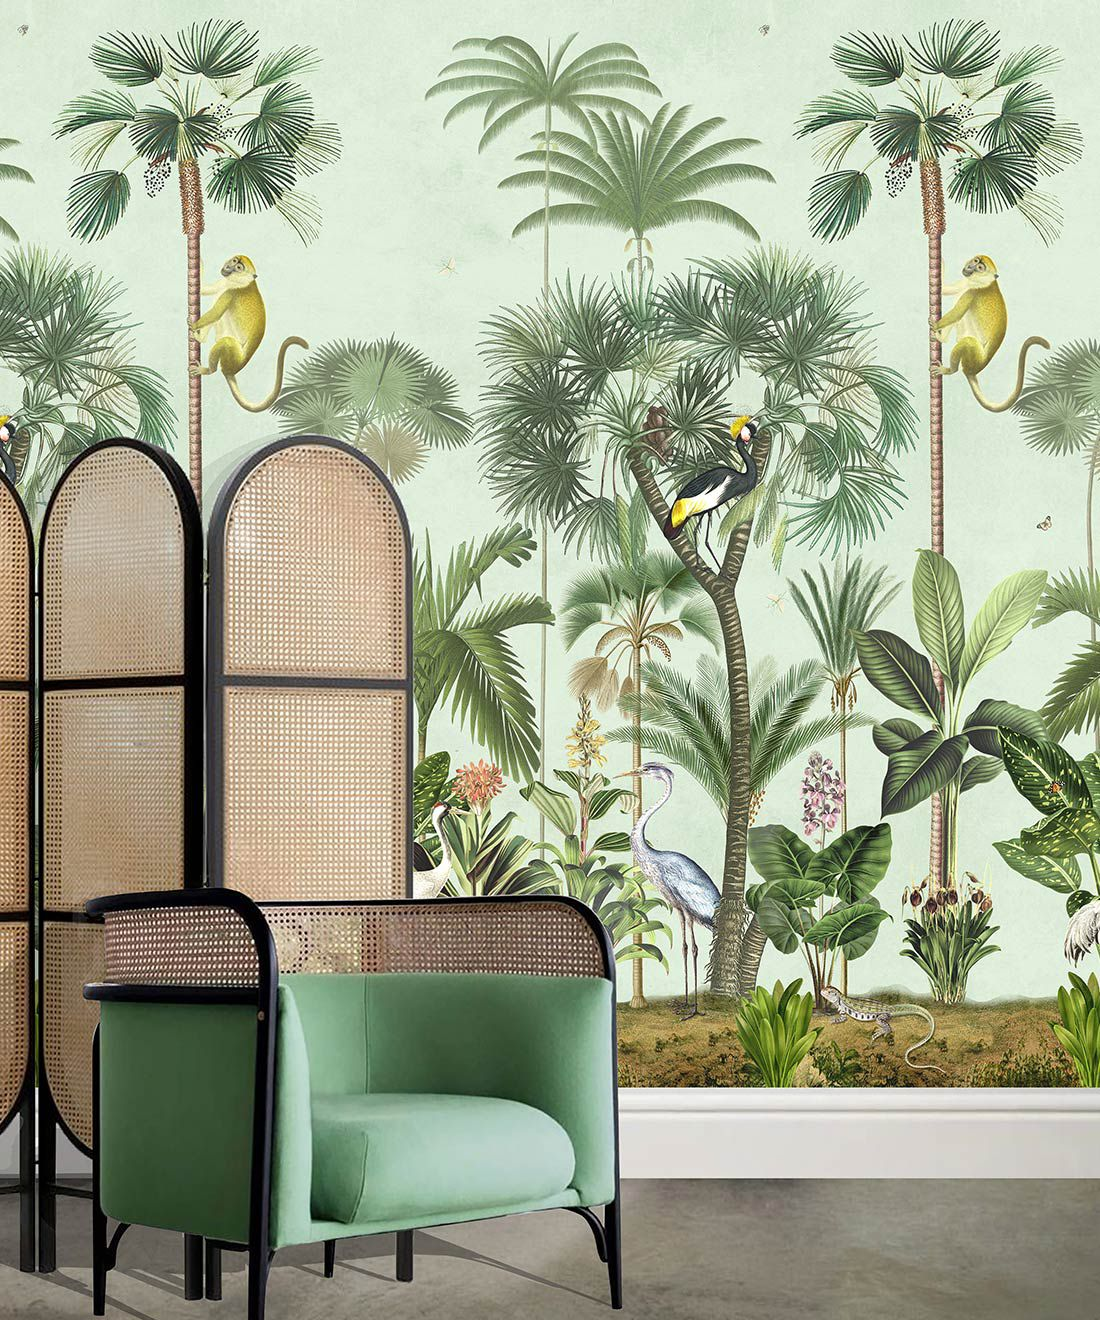 Indian Summer Wallpaper Mural •Bethany Linz • Palm Tree Mural • Blue • Insitu with chair